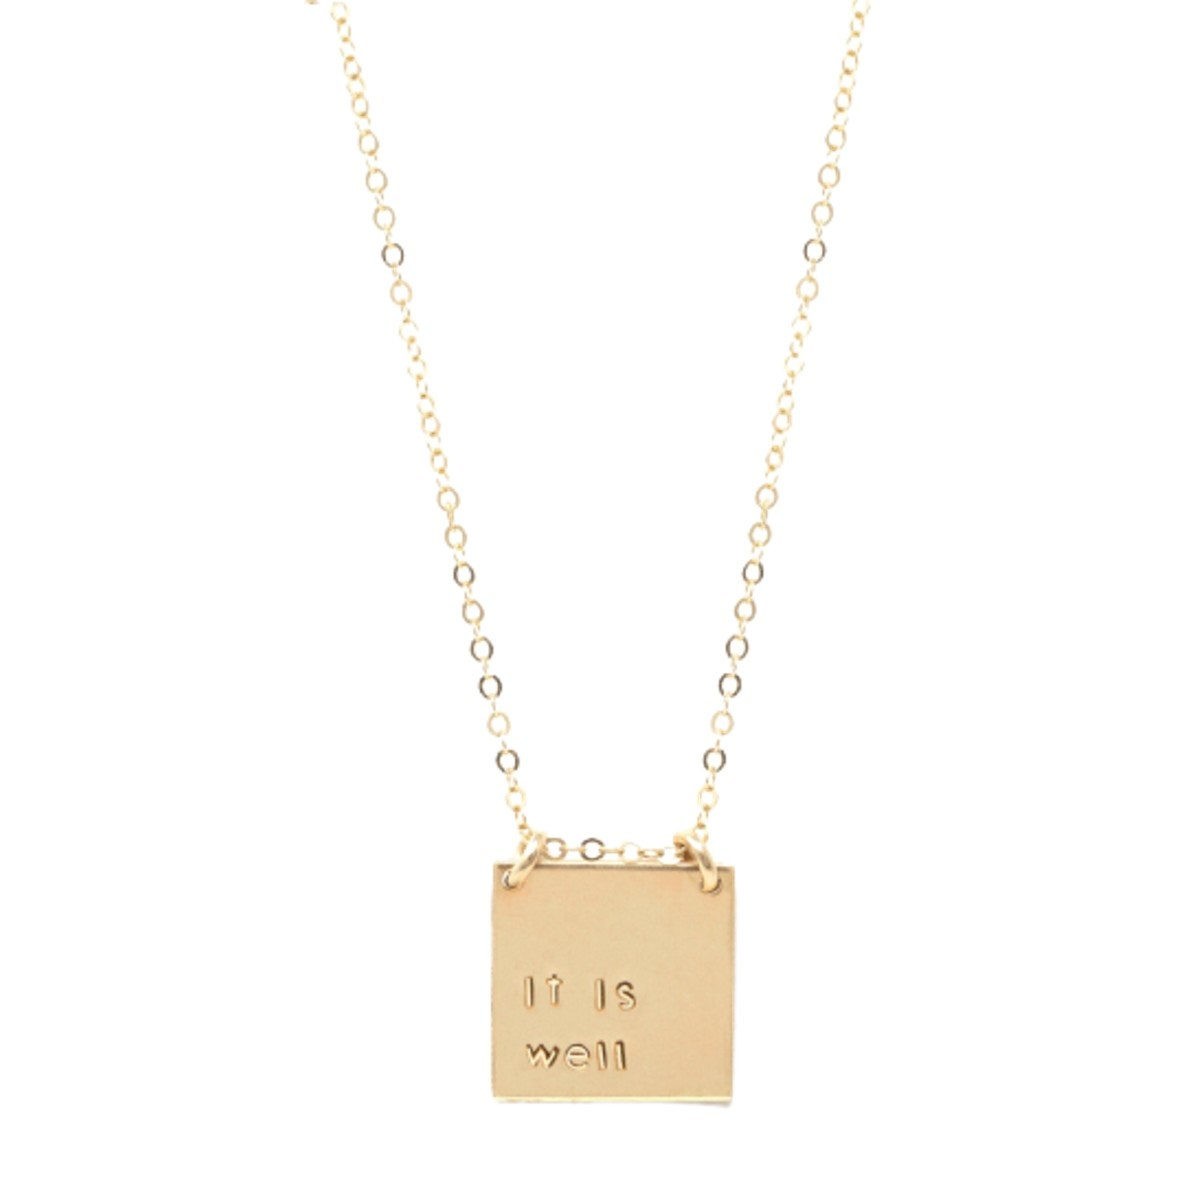 Able Phrase Necklace